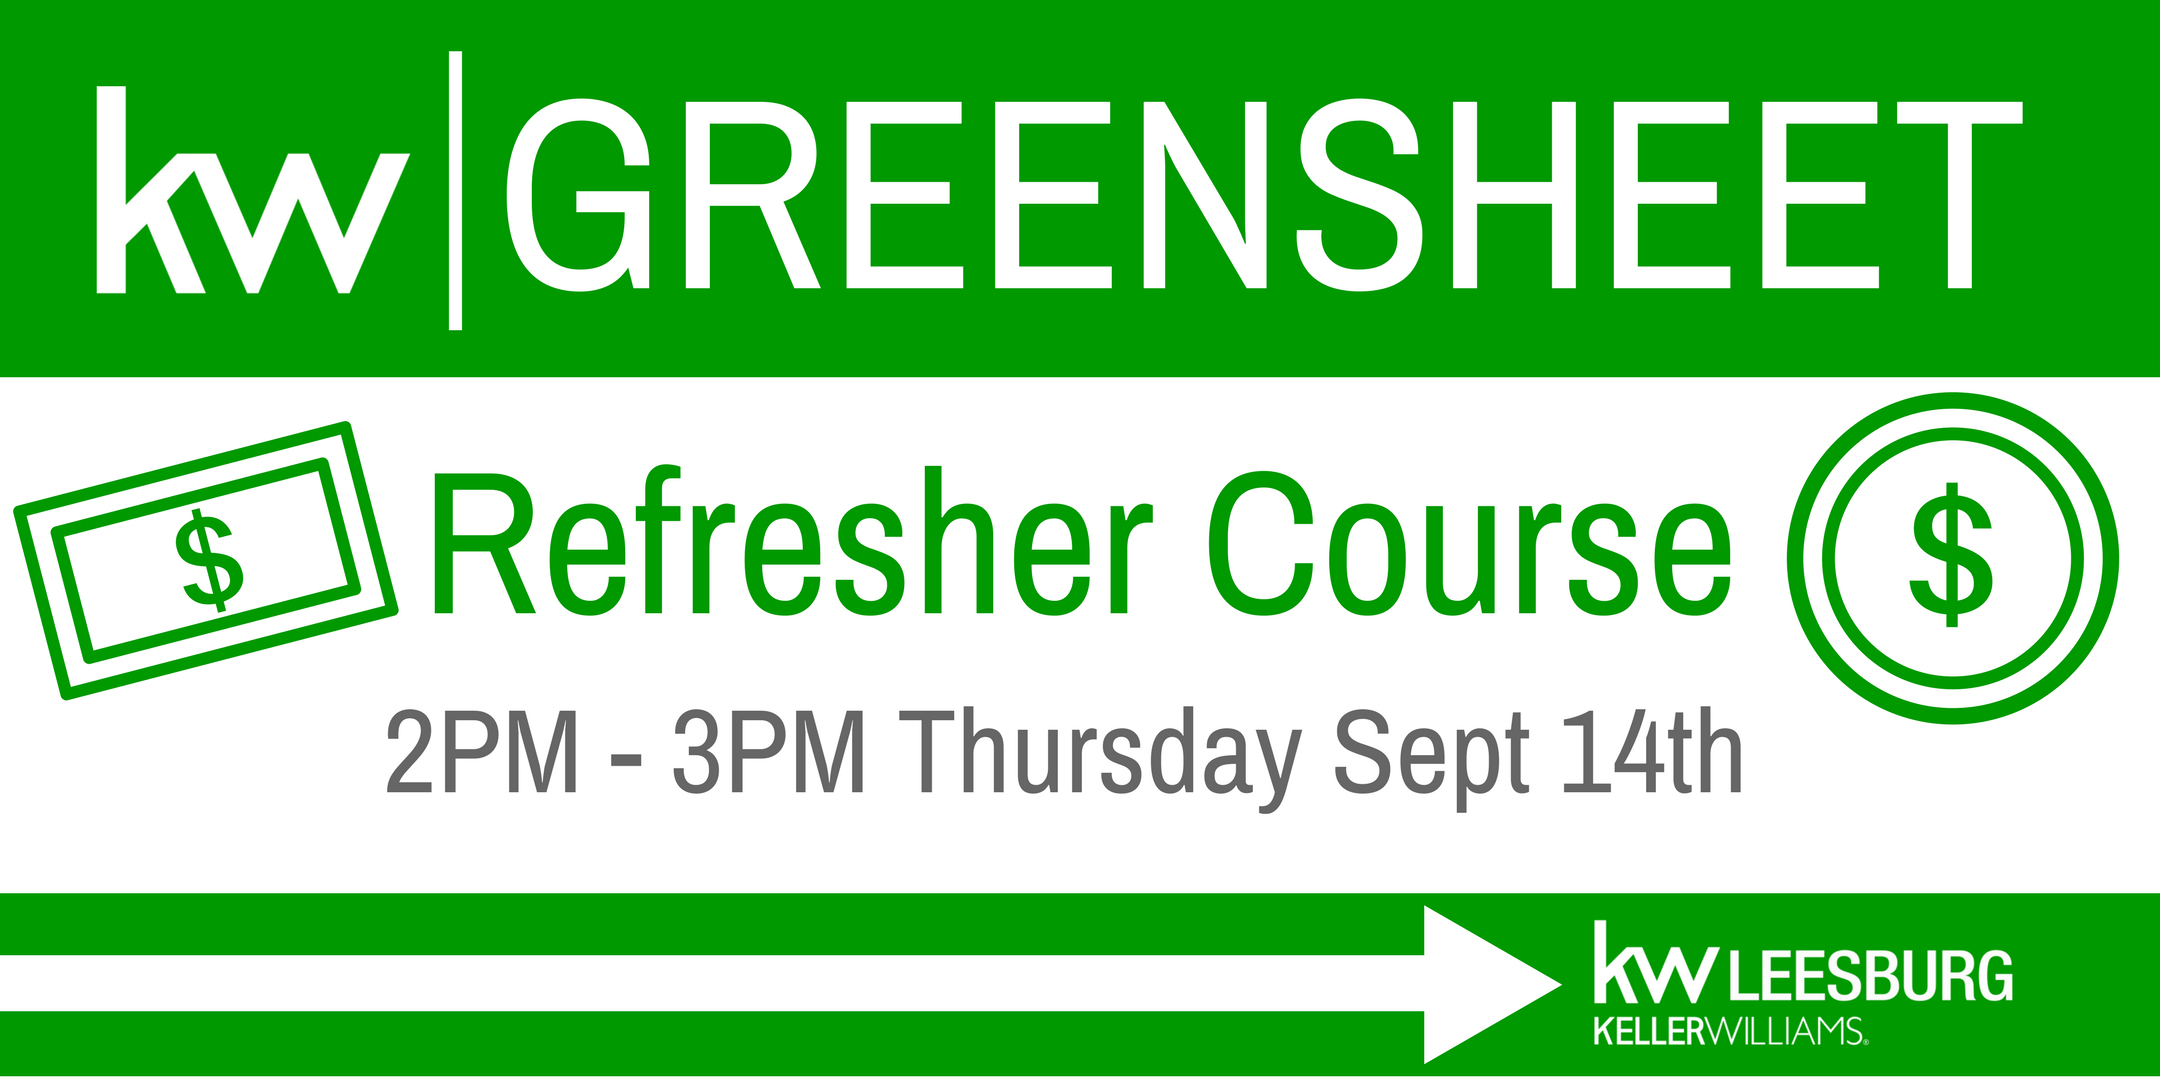 Greensheet Refresher Course photo